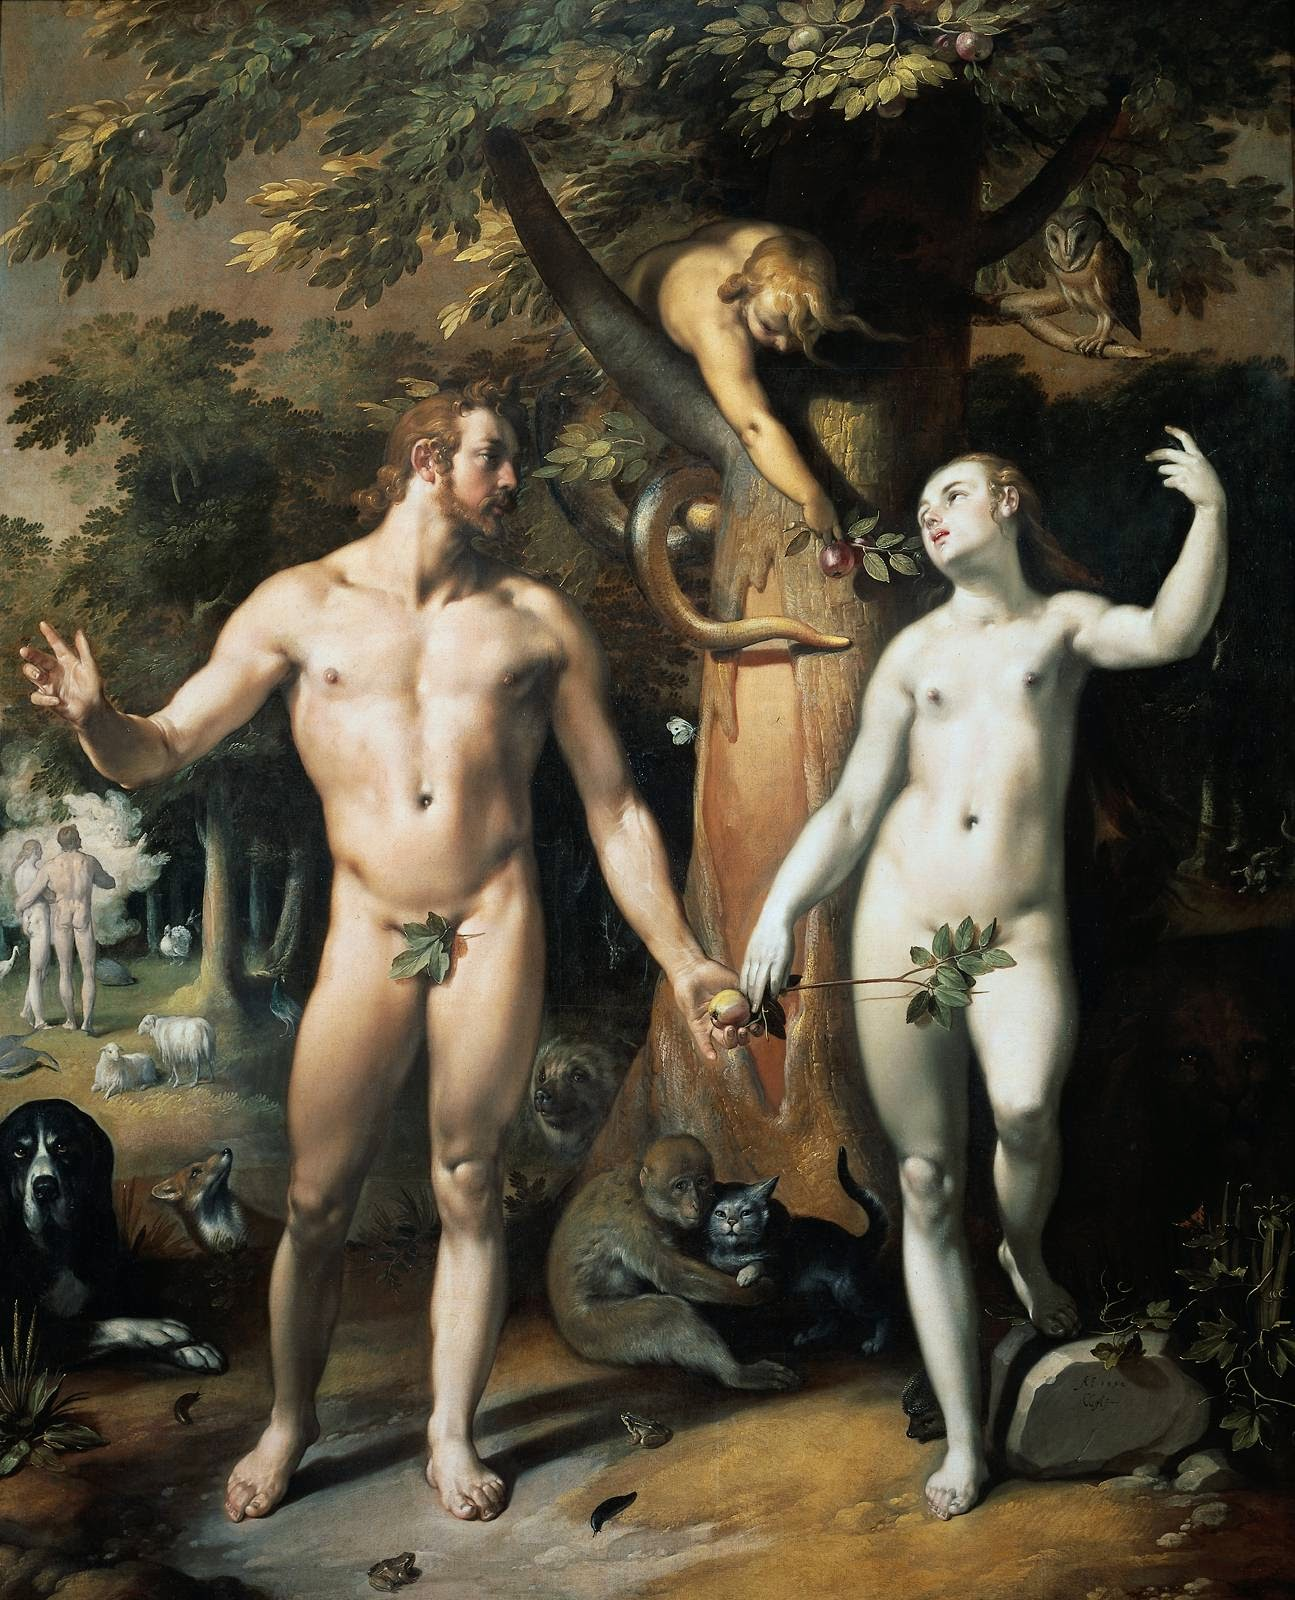 Cornelis-Cornelisz-van-Haarlem-The-Fall-of-Man..jpg